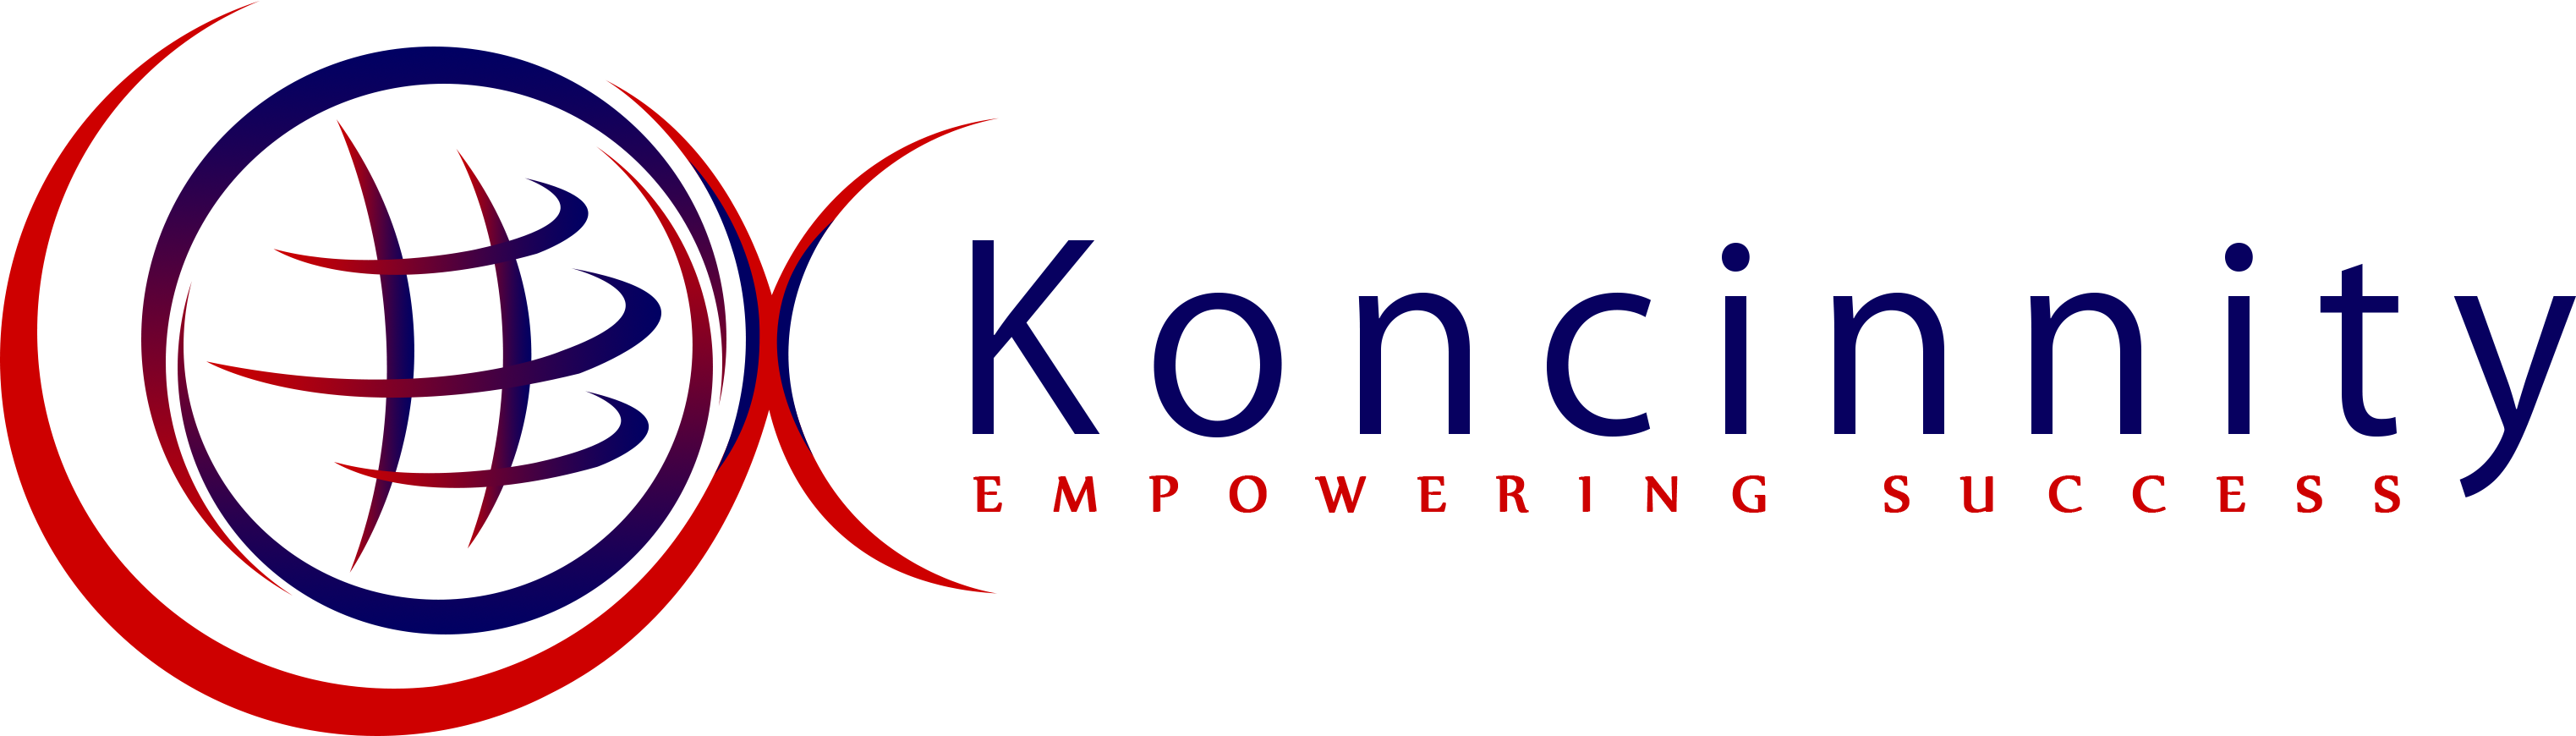 Koncinnity Solutions Pvt. Ltd Logo